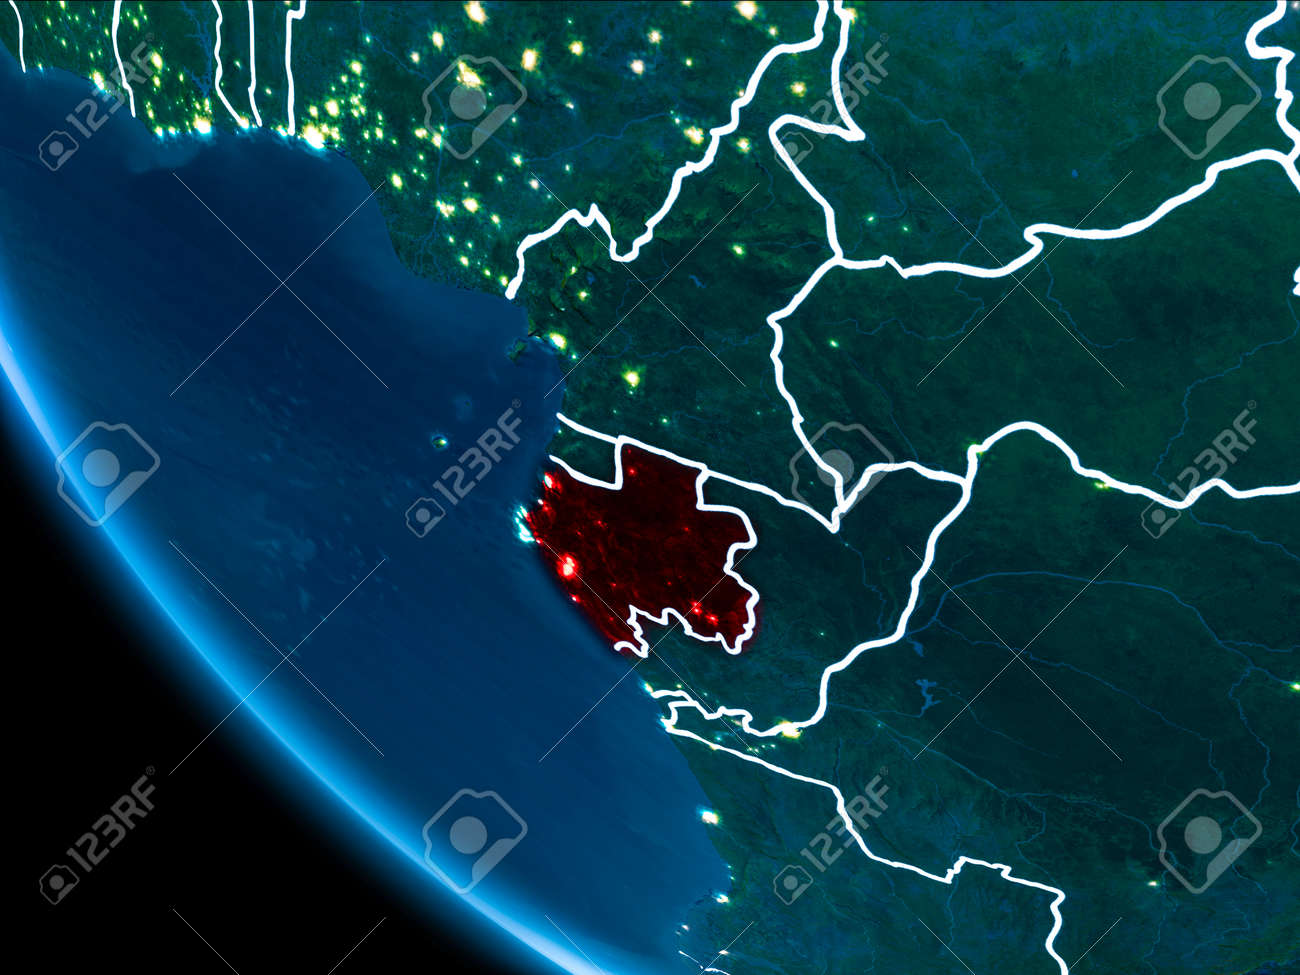 Map of gabon in red as seen from space on planet earth at night illustration map of gabon in red as seen from space on planet earth at night with white borderlines and city lights 3d illustration gumiabroncs Image collections